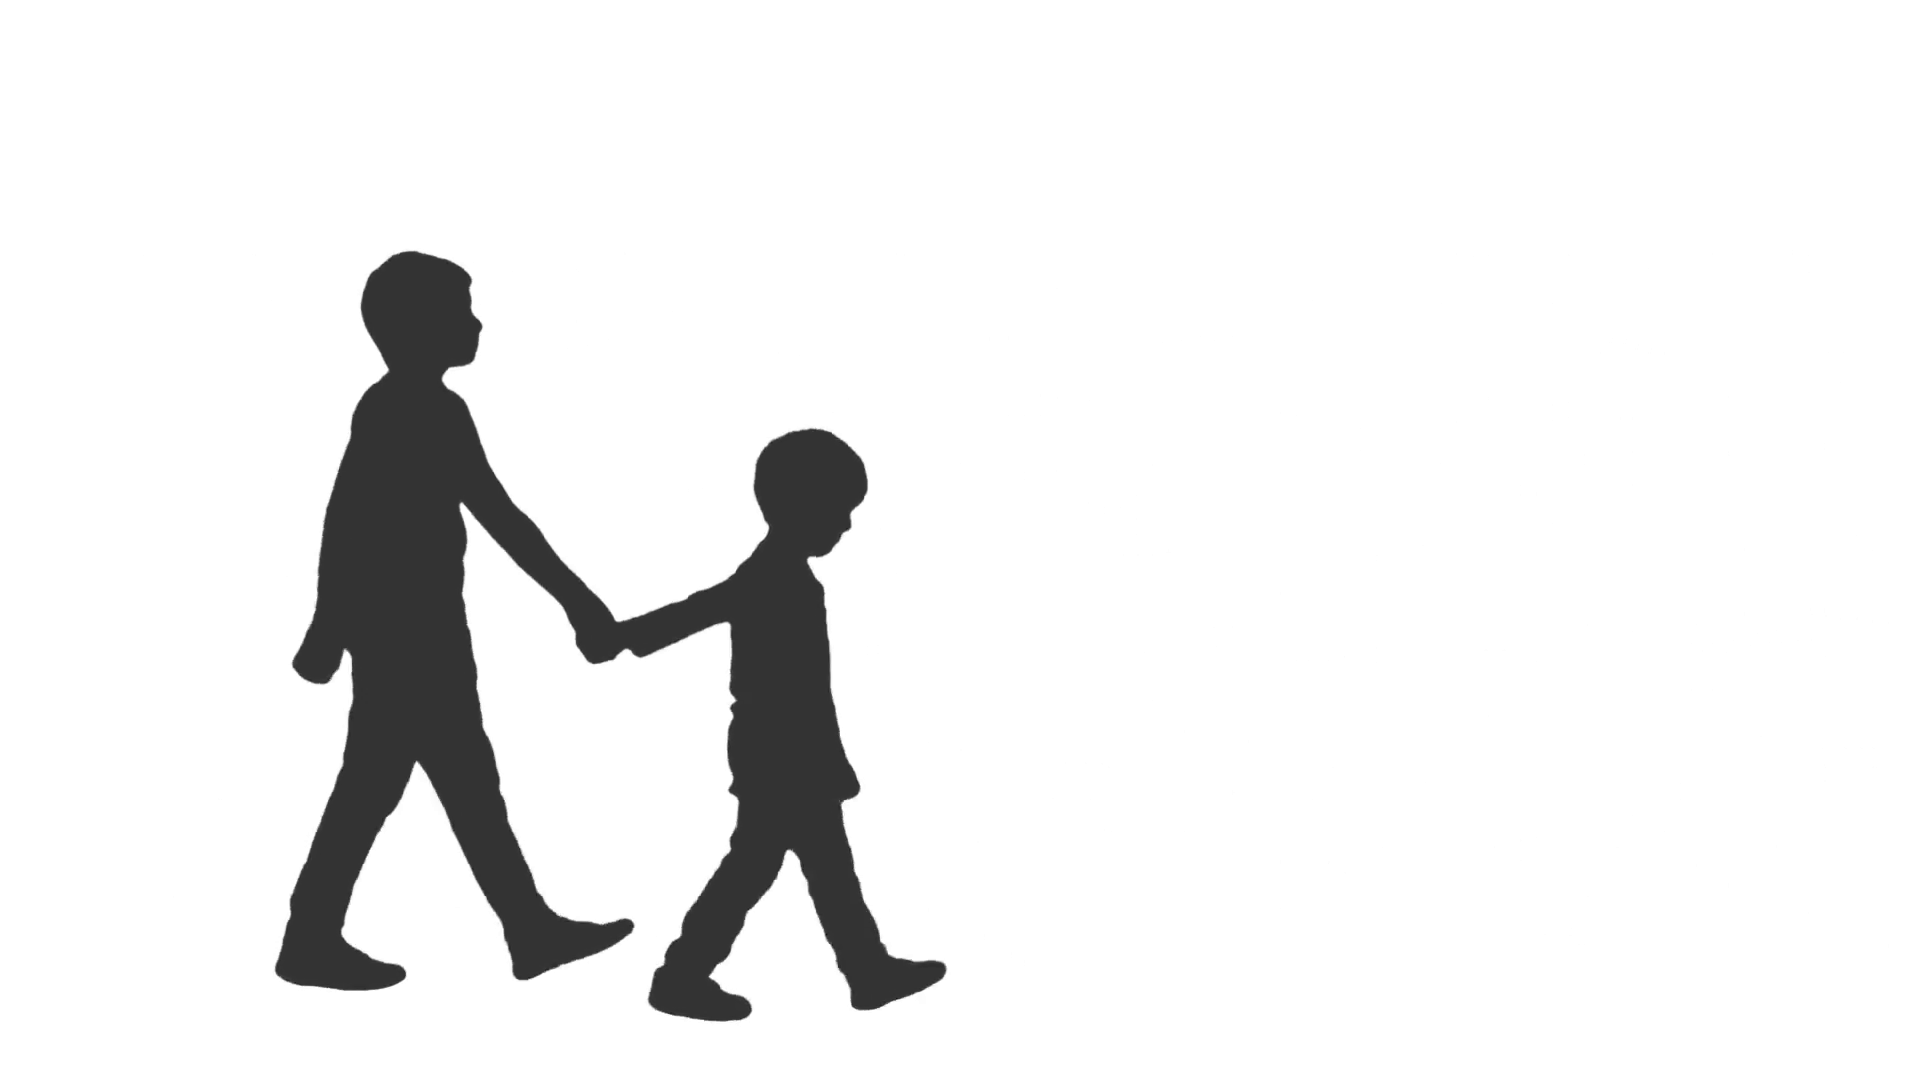 1920x1080 Silhouette Of Two Little Boys Walking Holding Hands. Side View